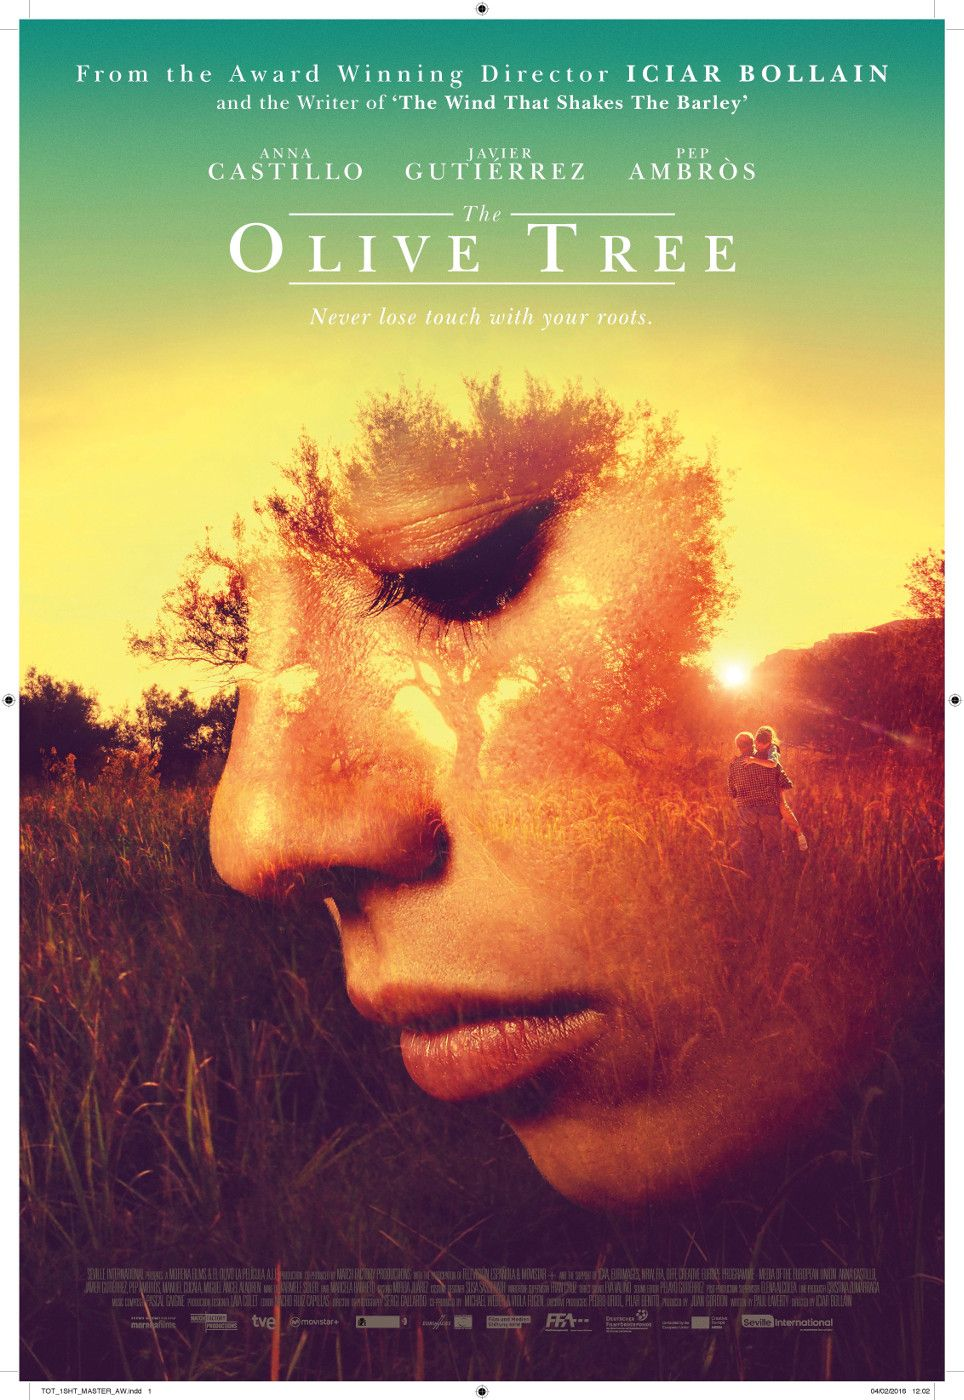 THE OLIVE TREE EL OLIVO Spain, Germany 98 min. DIRECTED BY